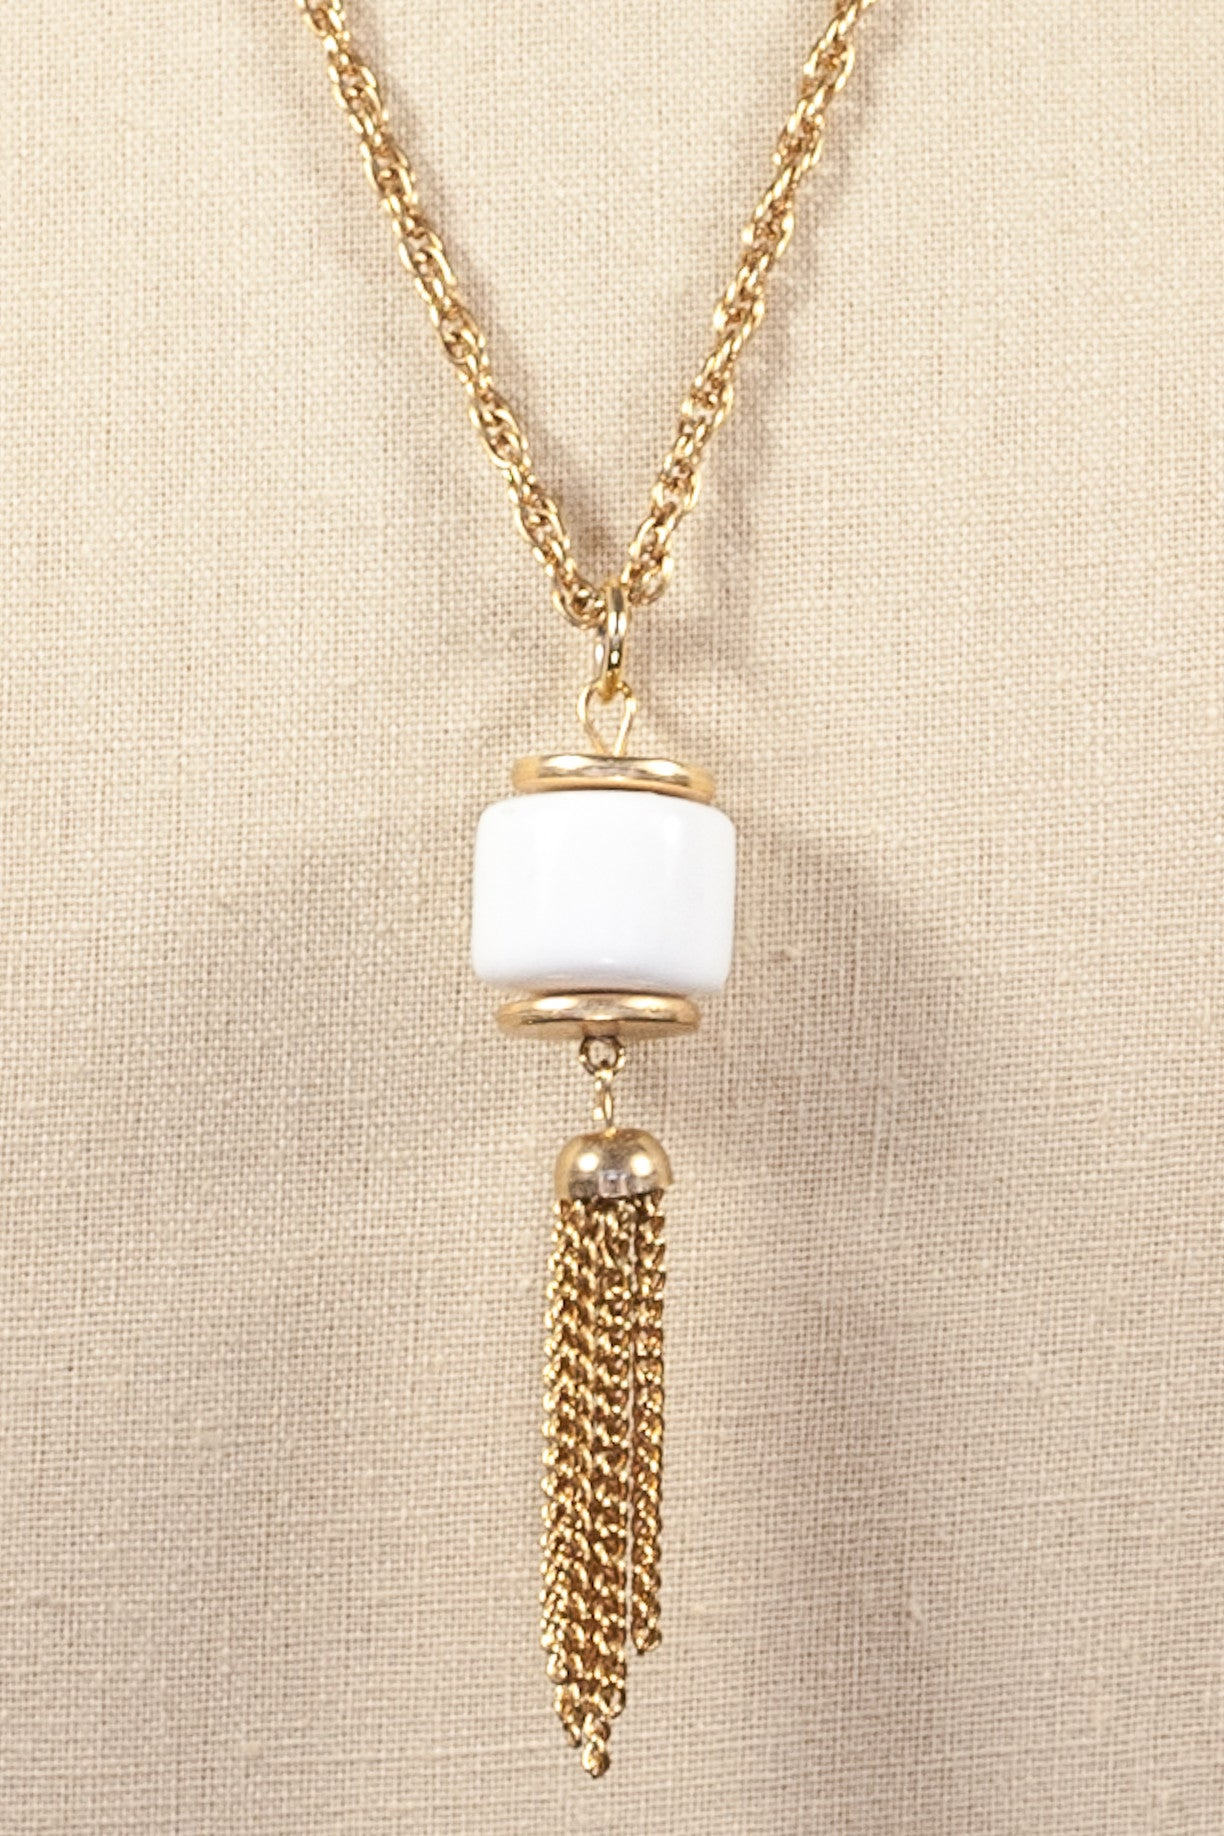 60's__Vintage__White Tassel Necklace